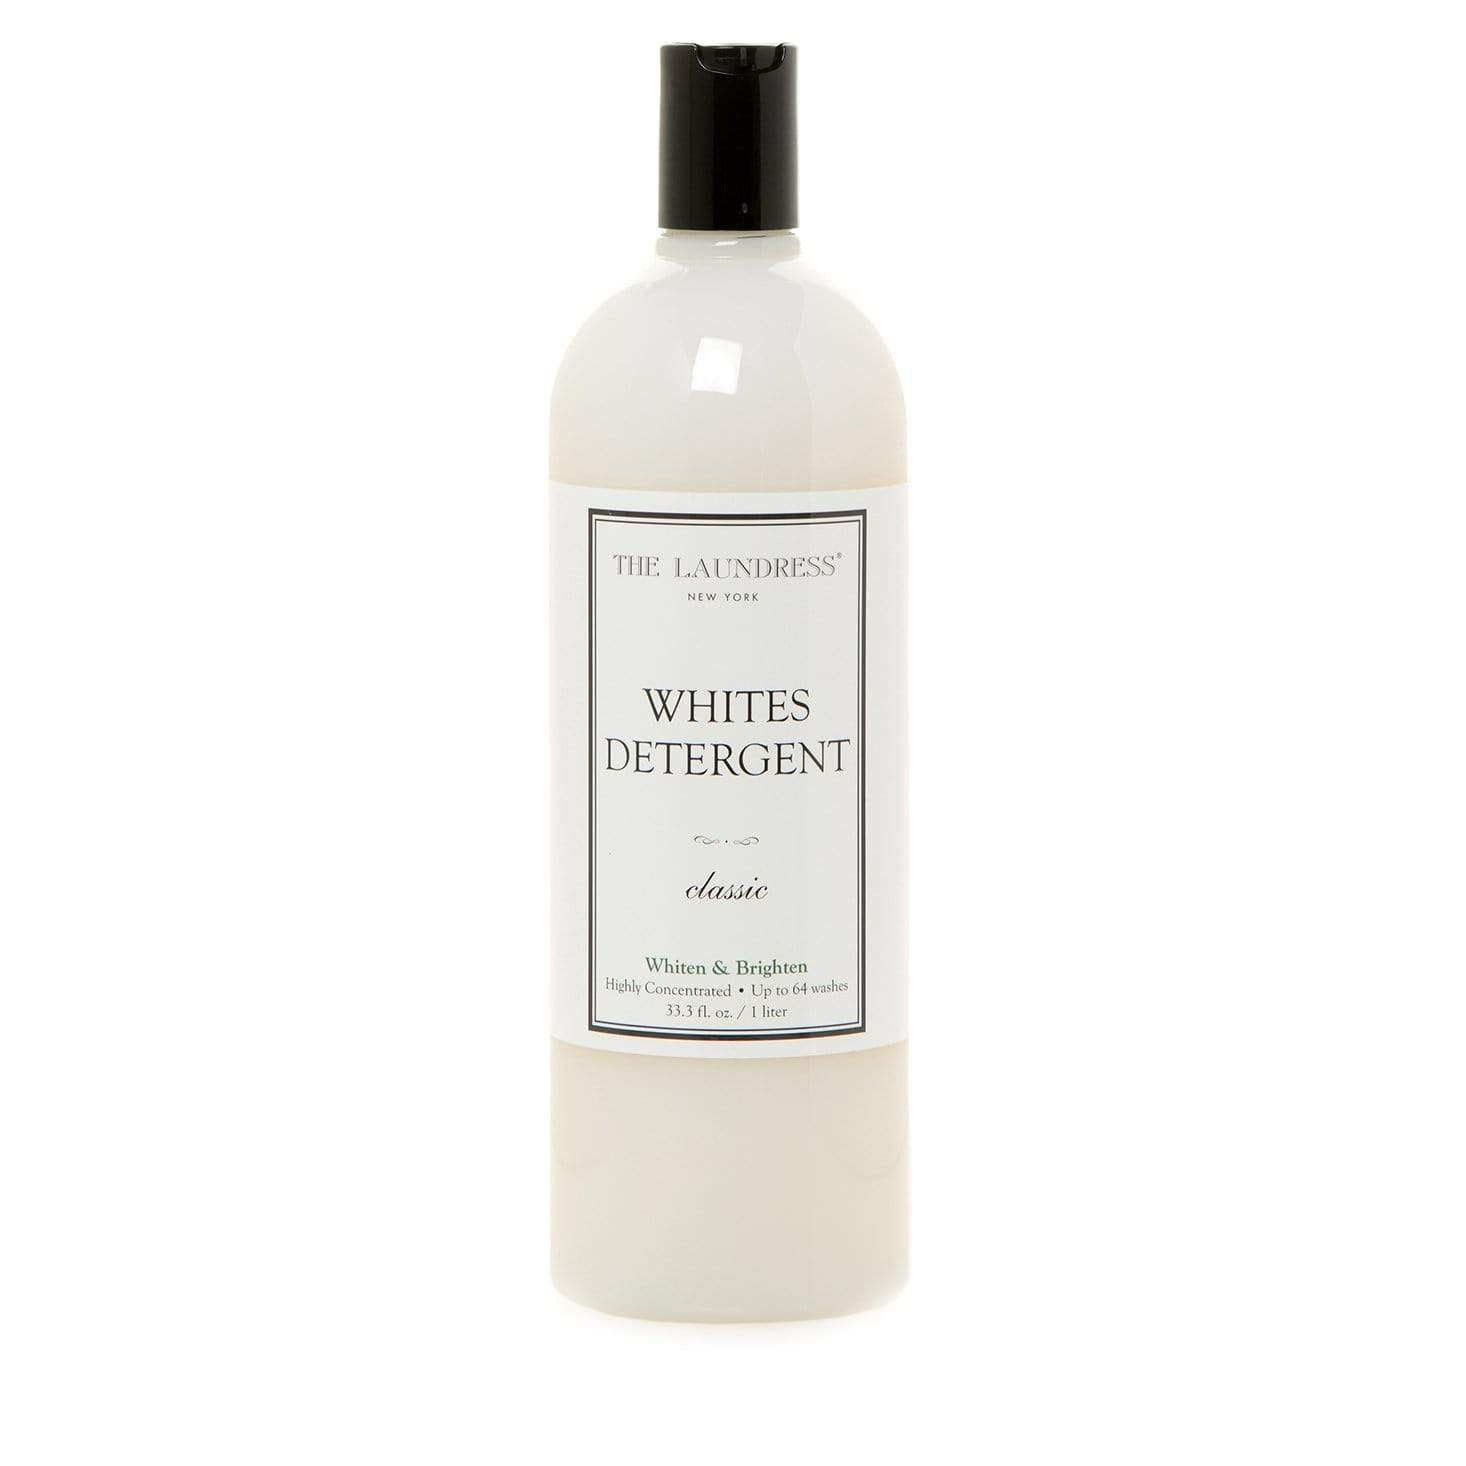 The Laundress Whites Detergent 1 Litre - Classic